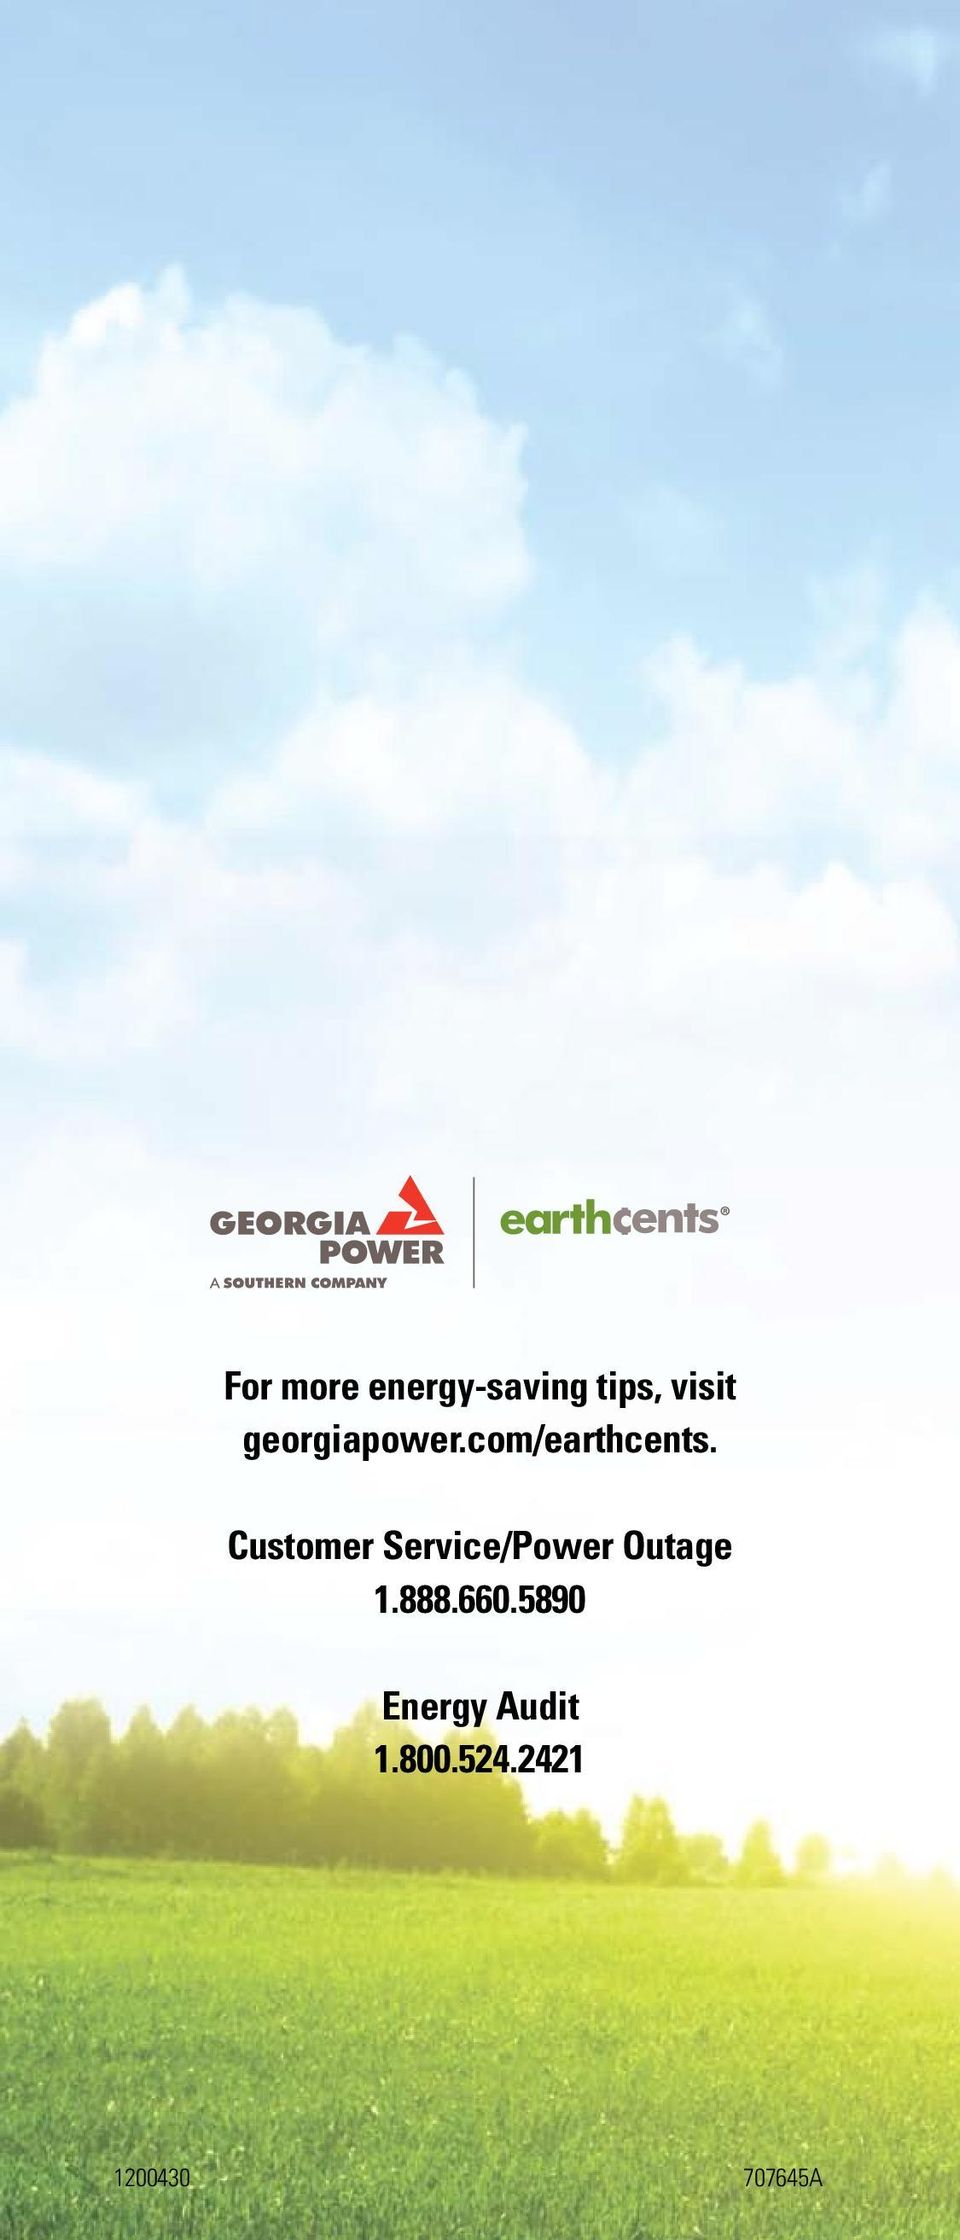 Customer Service/Power Outage 1.888.